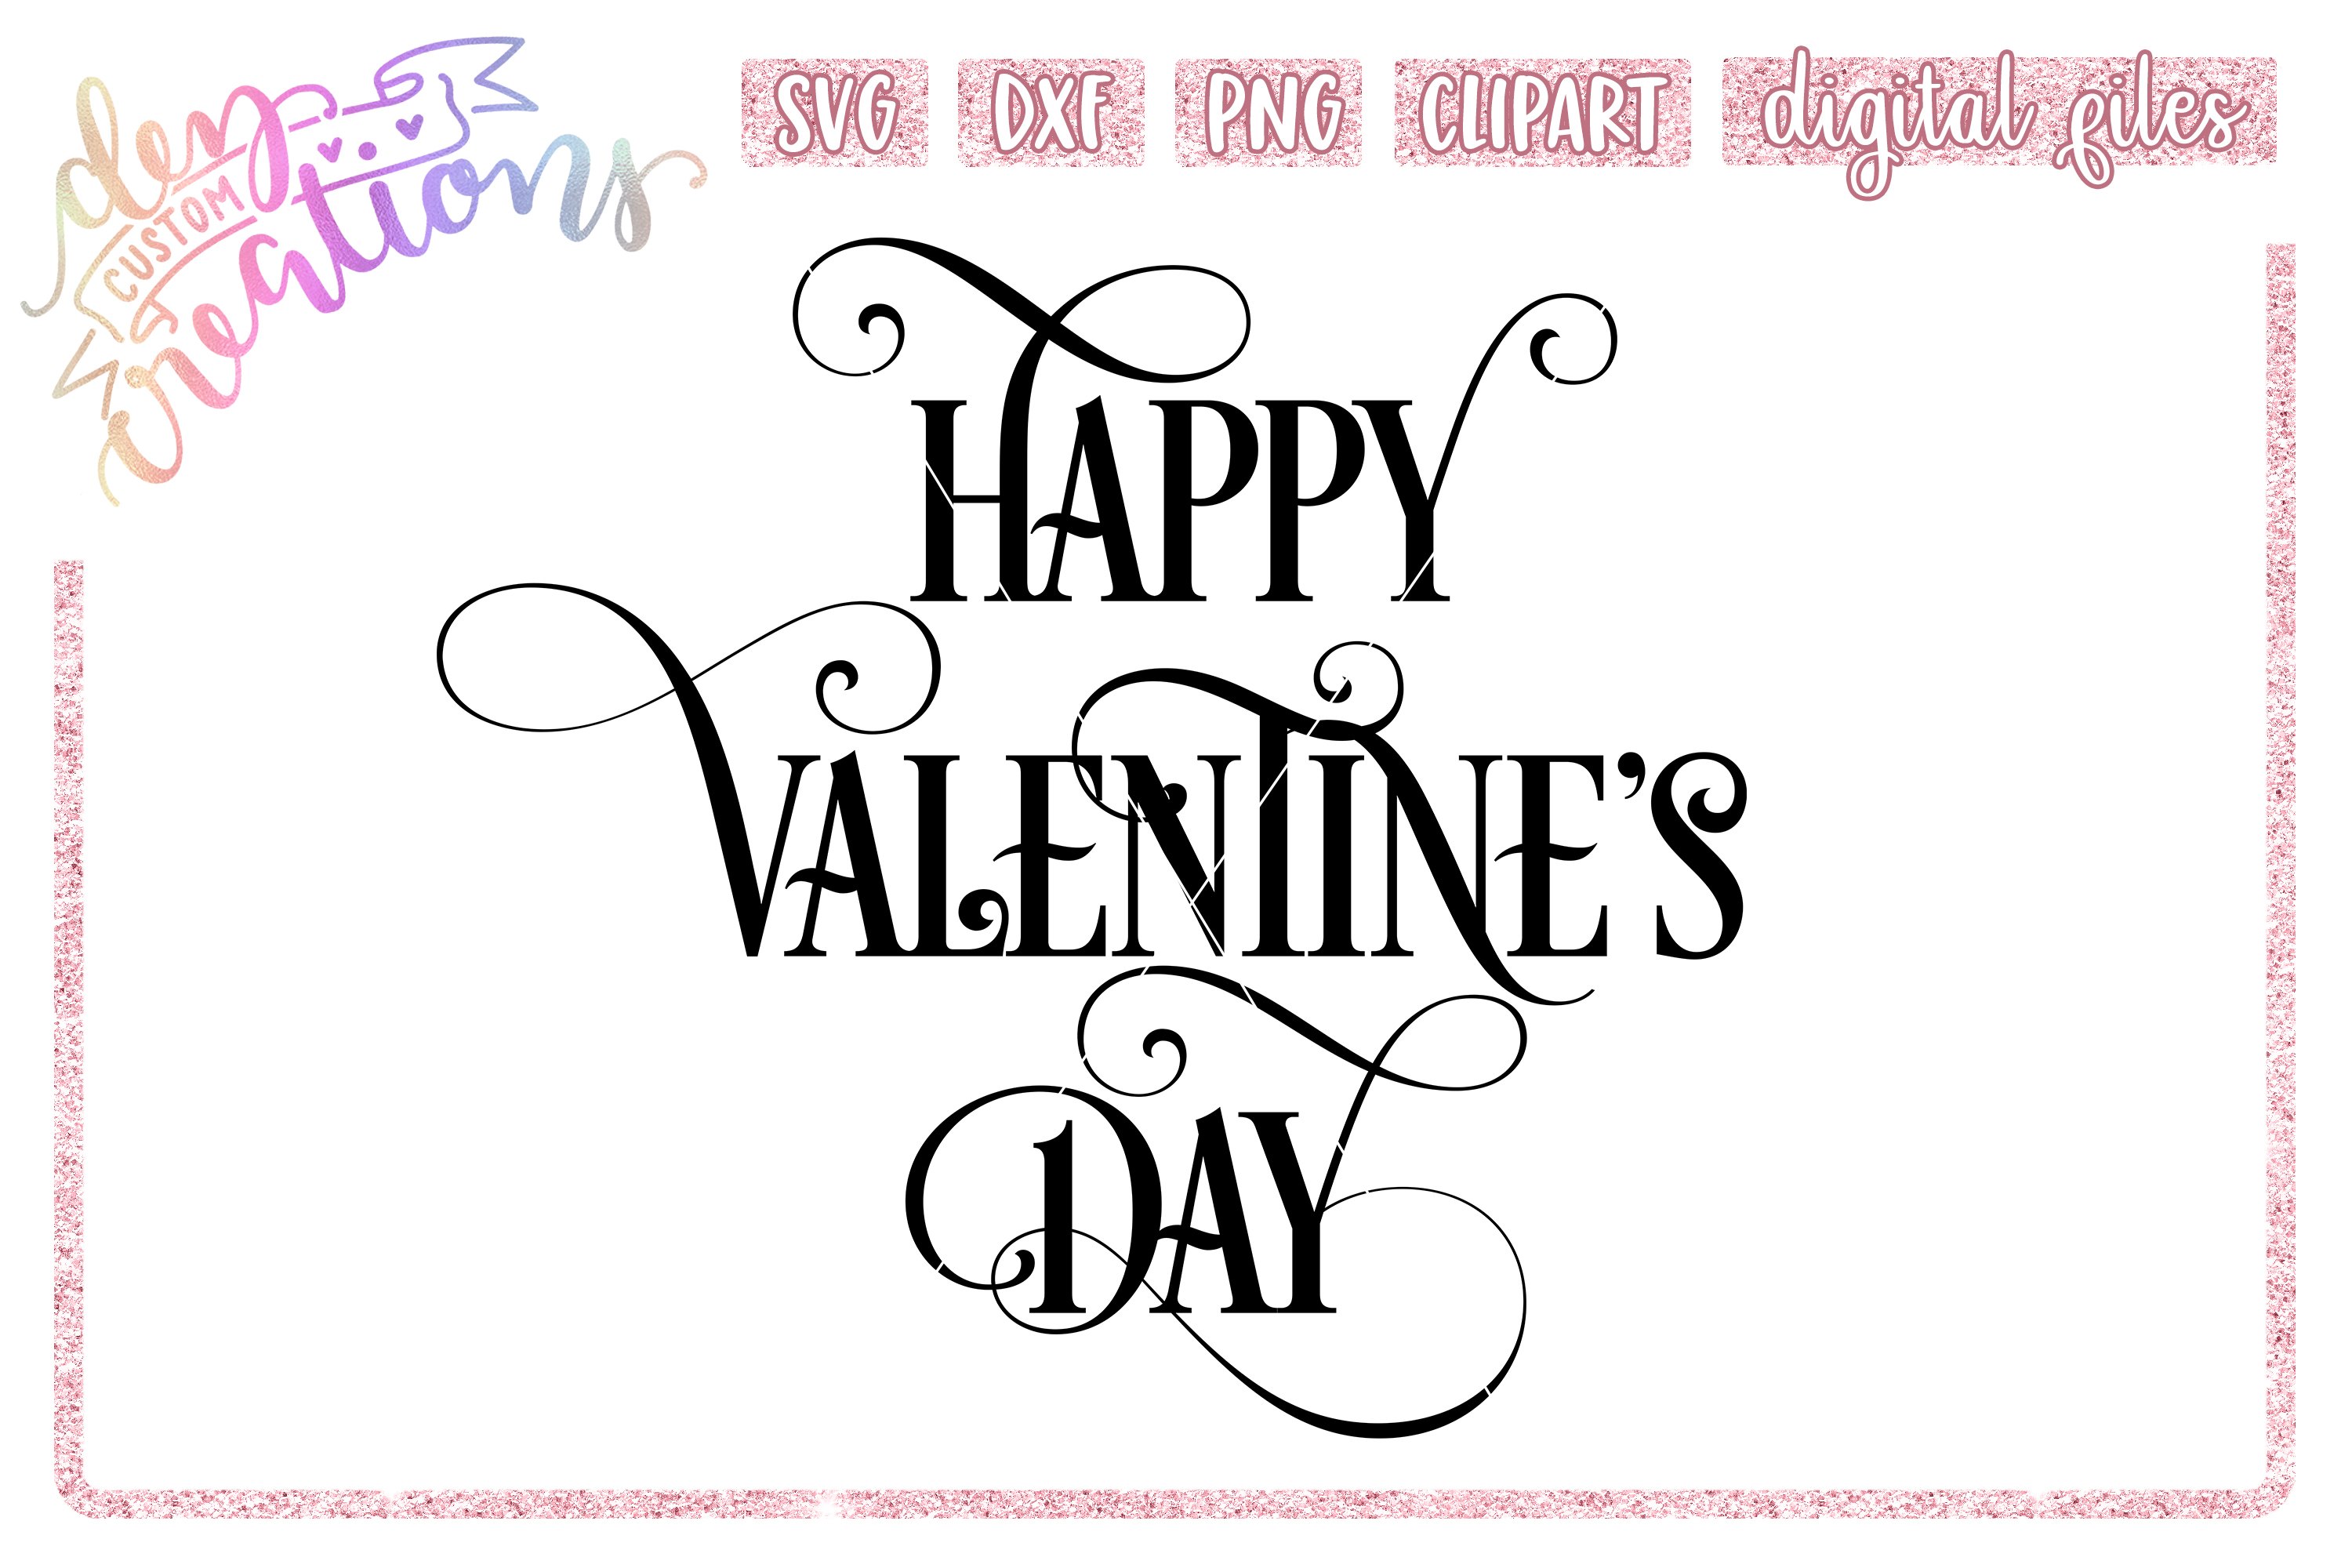 Happy Valentine's Day - SVG DXF PNG - Digital Craft File example image 1